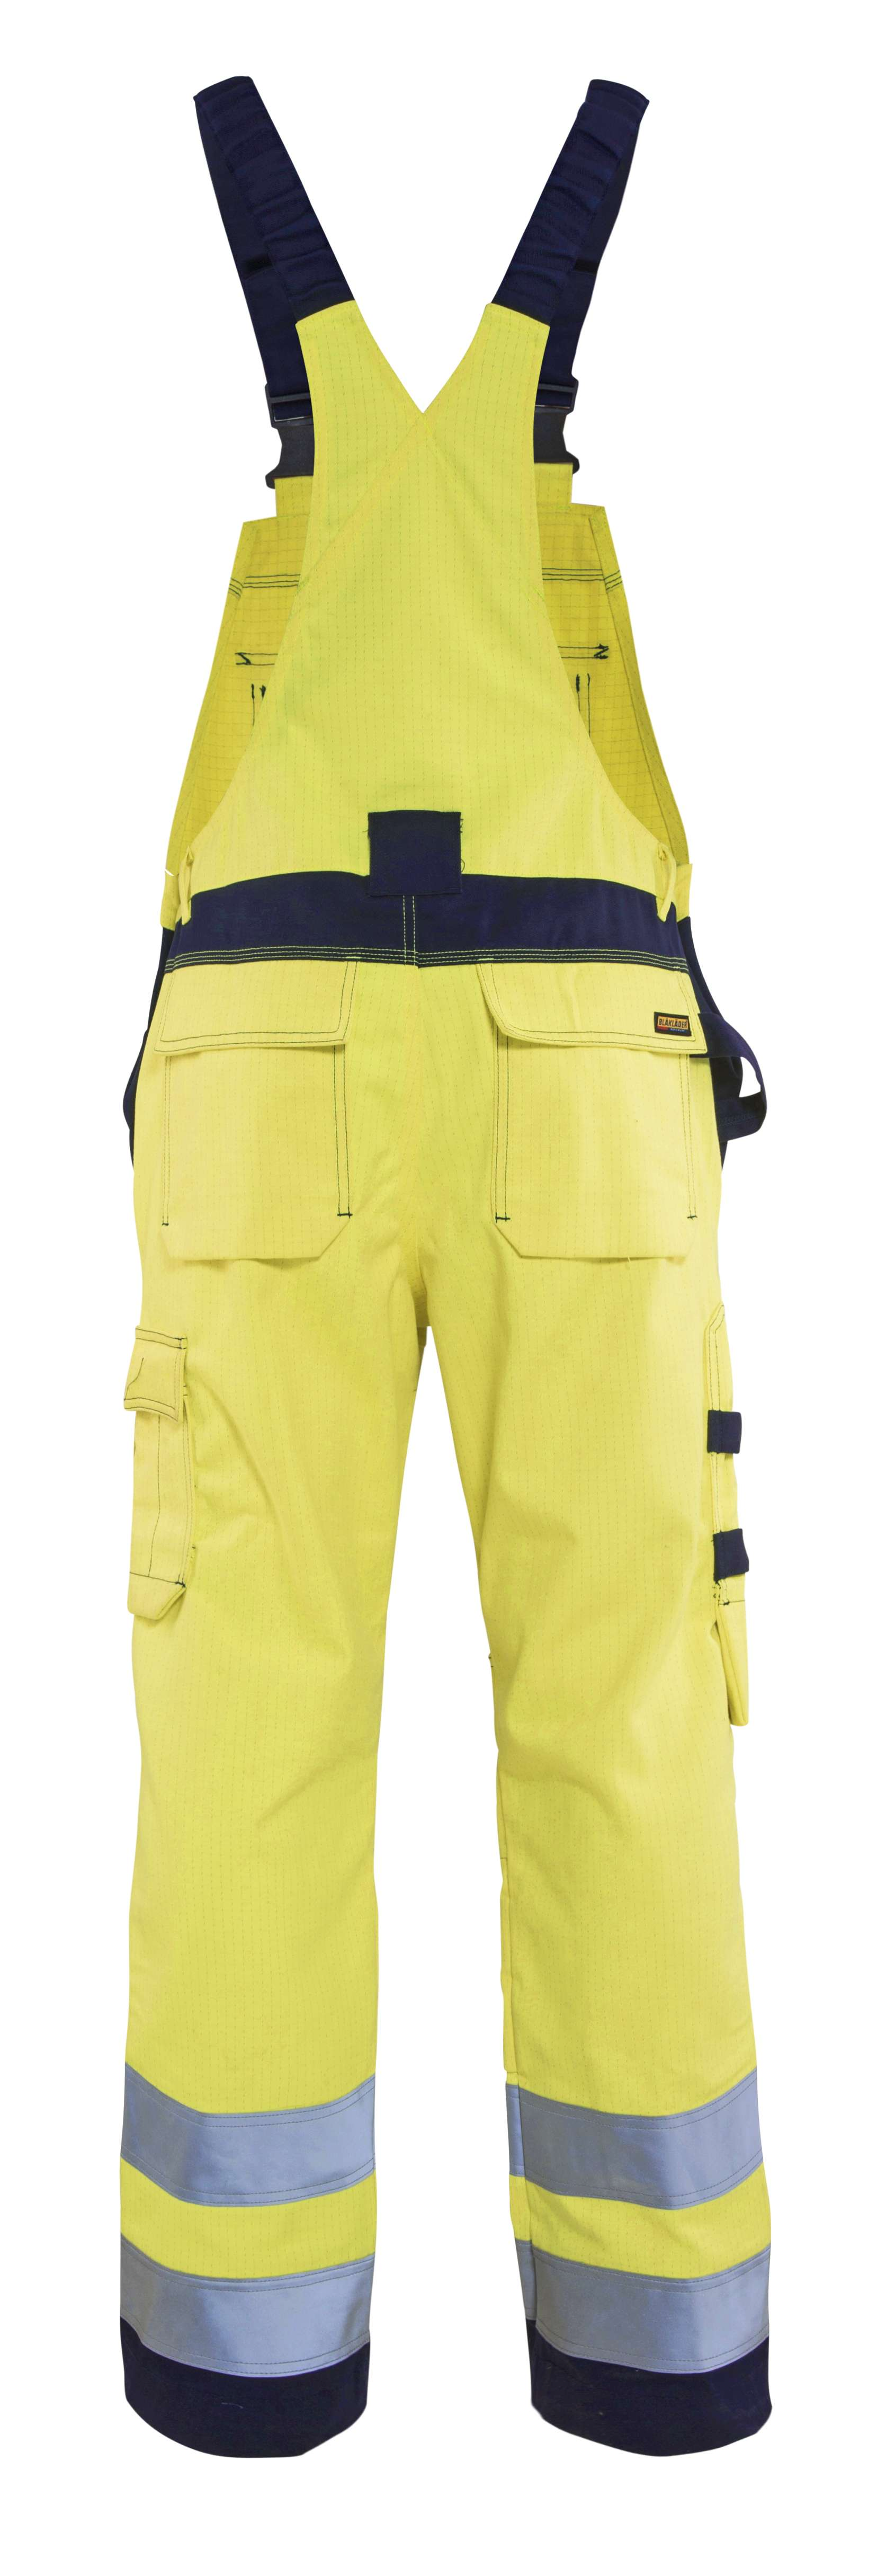 Blaklader Am. Overalls 26081514 Multinorm geel-marineblauw(3389)